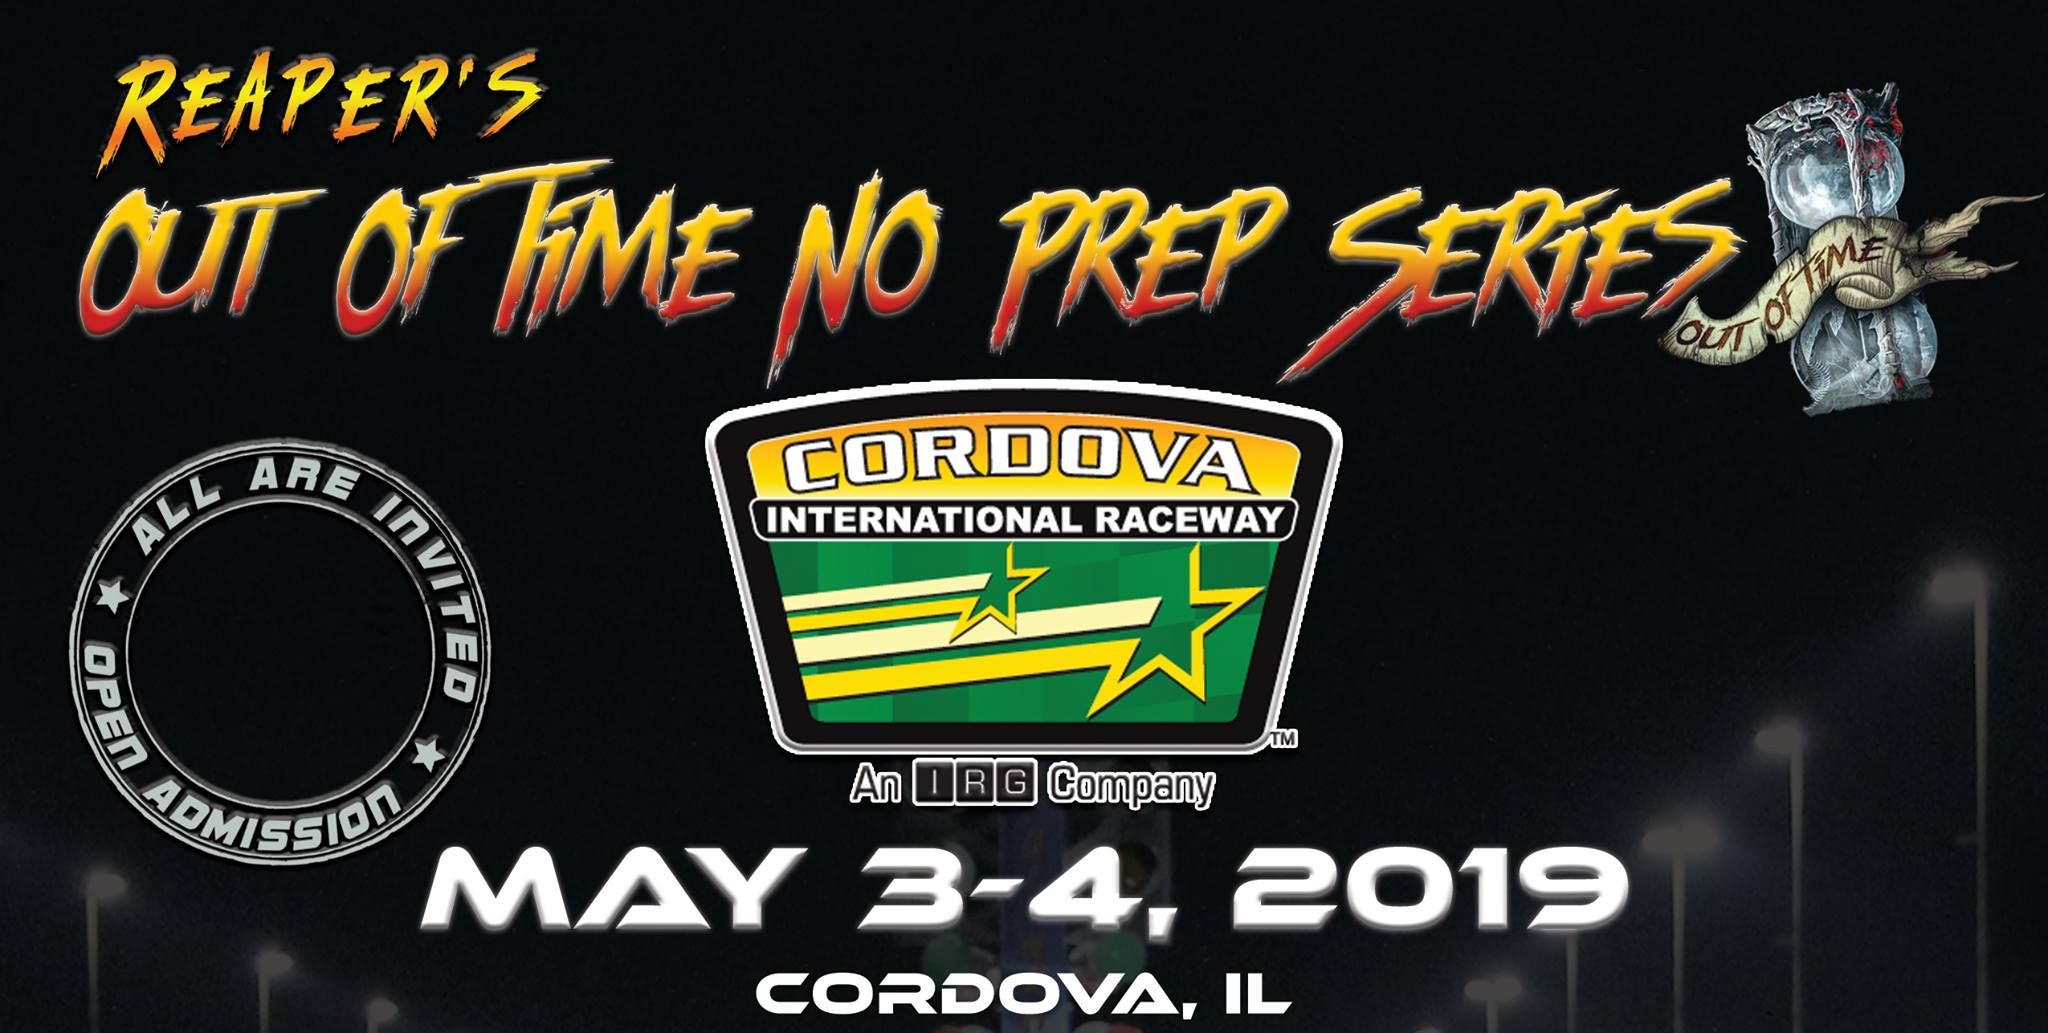 Join us at Cordova International Raceway for the Street